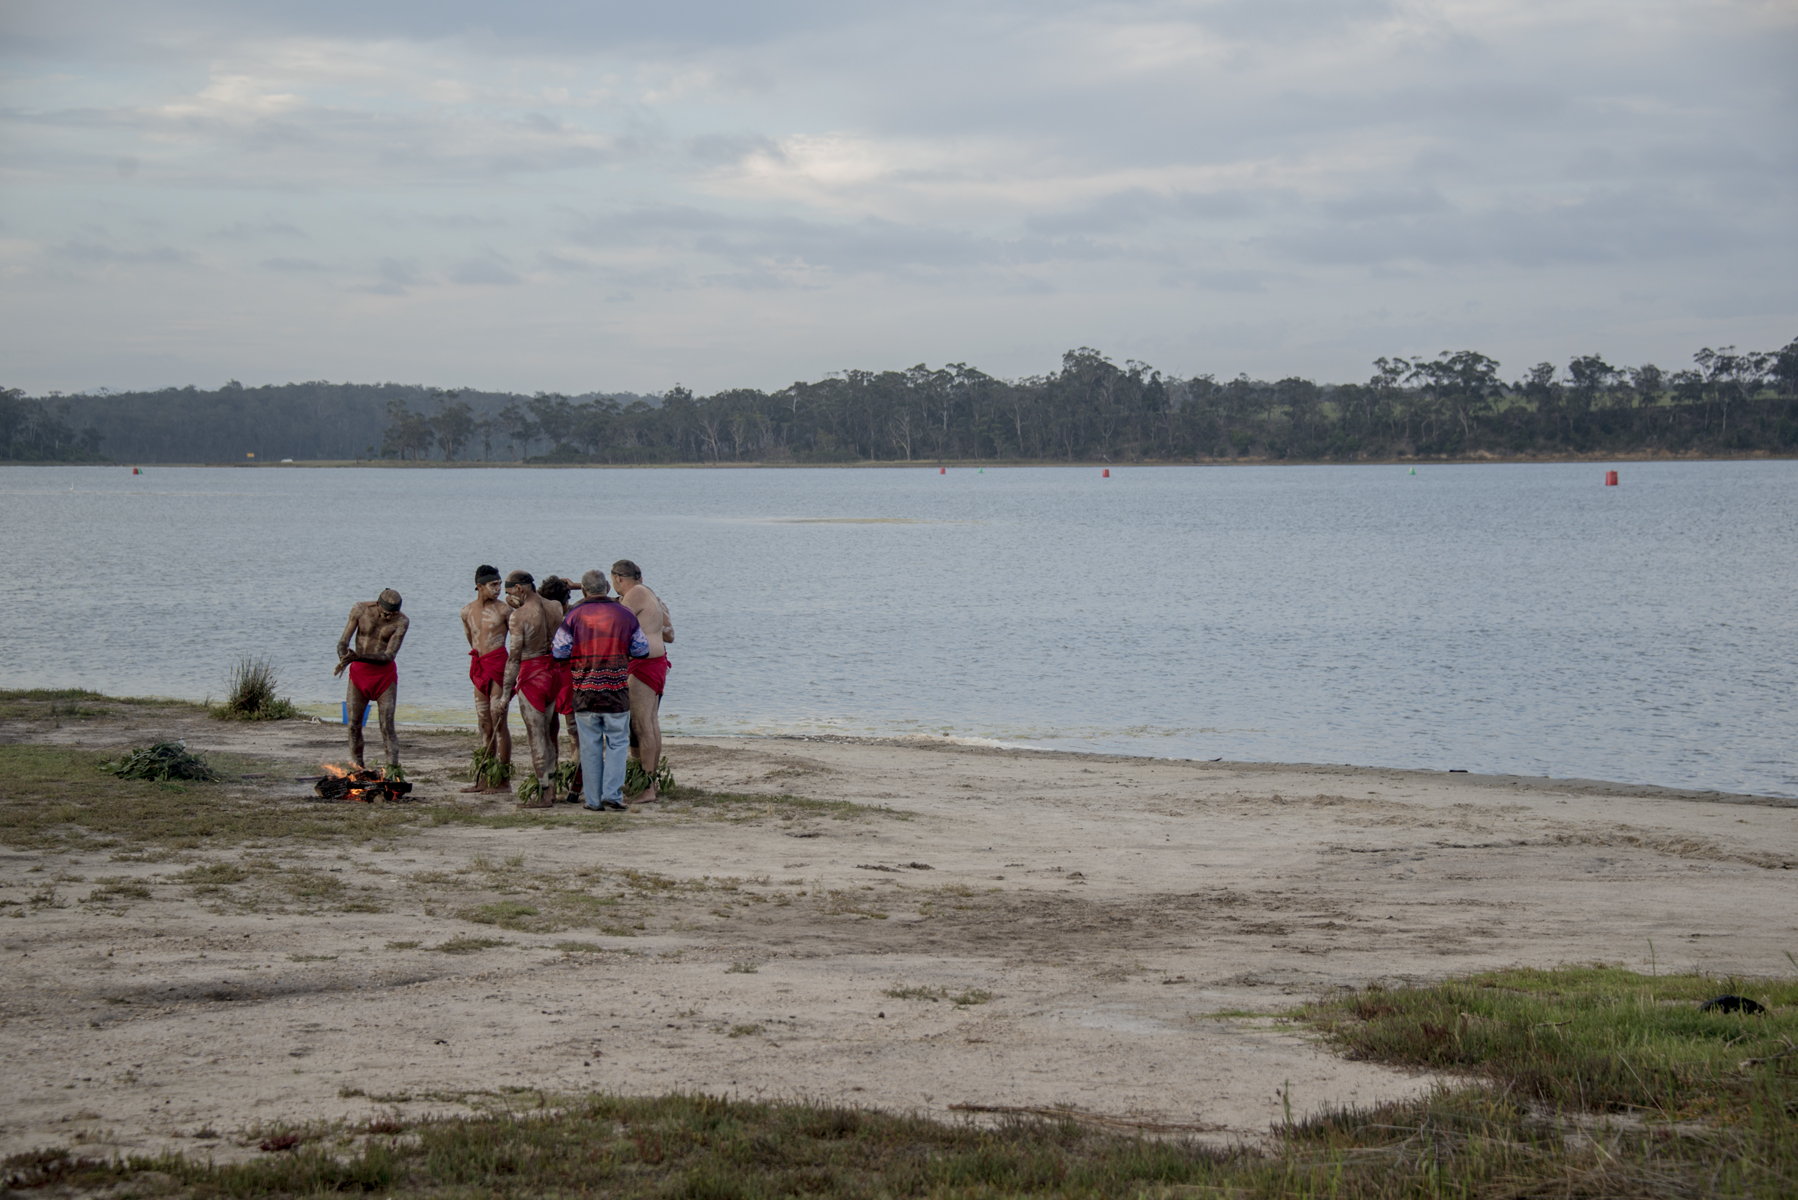 Corroboree on the Water